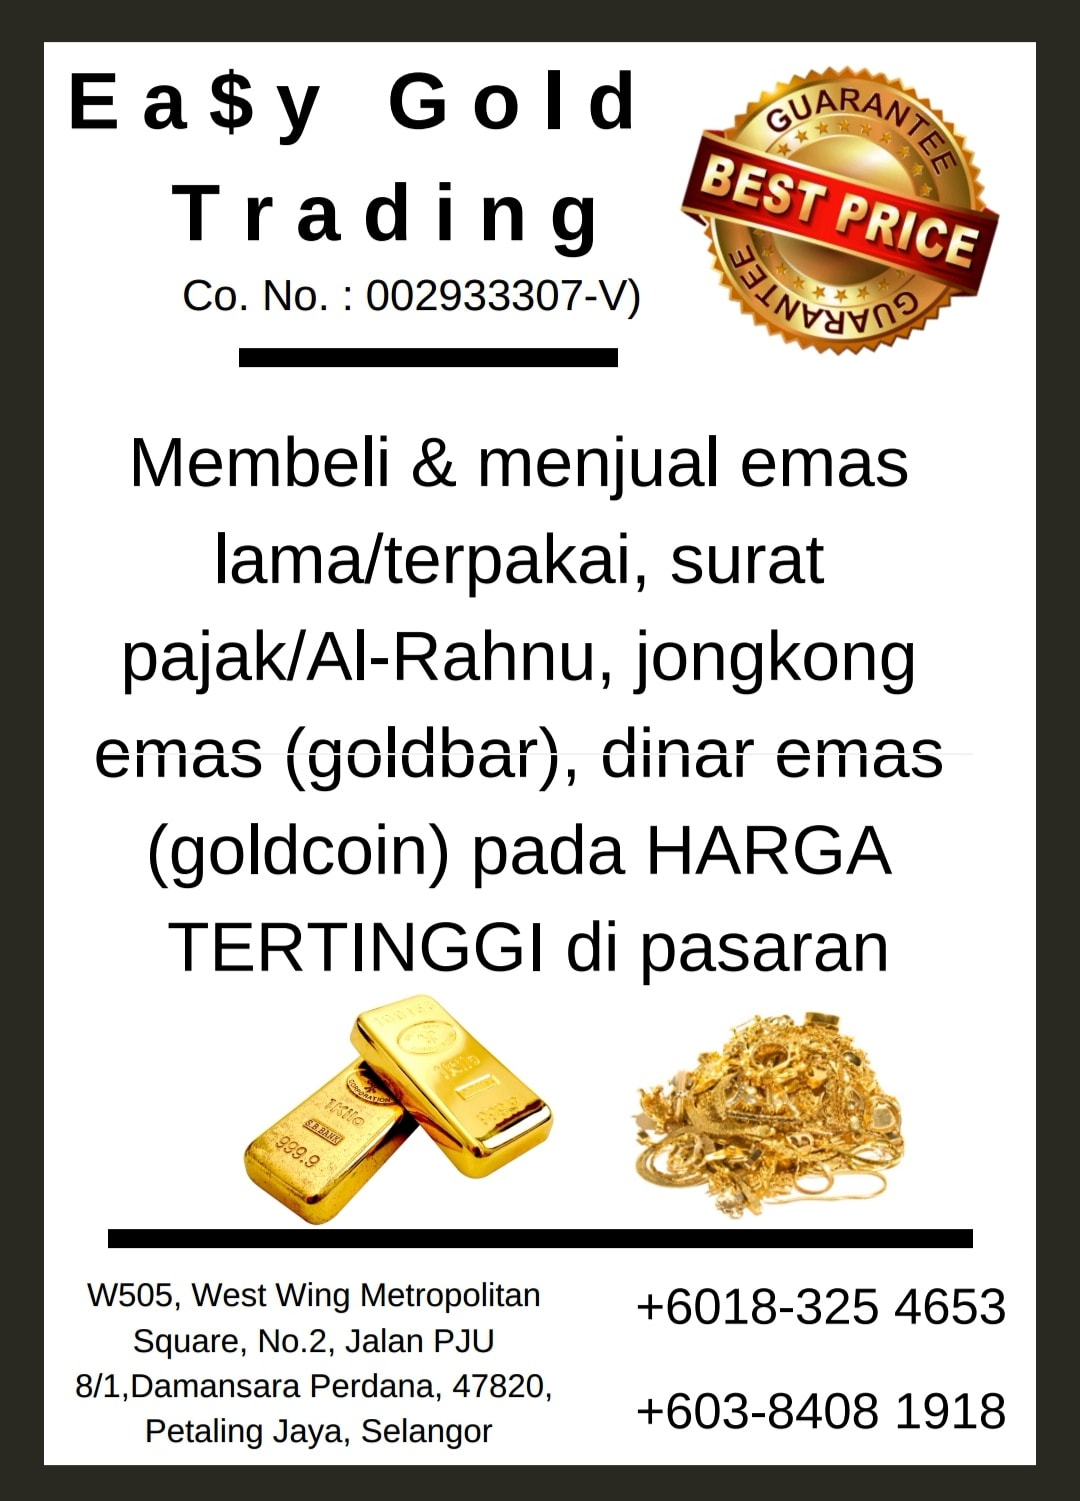 Easy Gold Trading